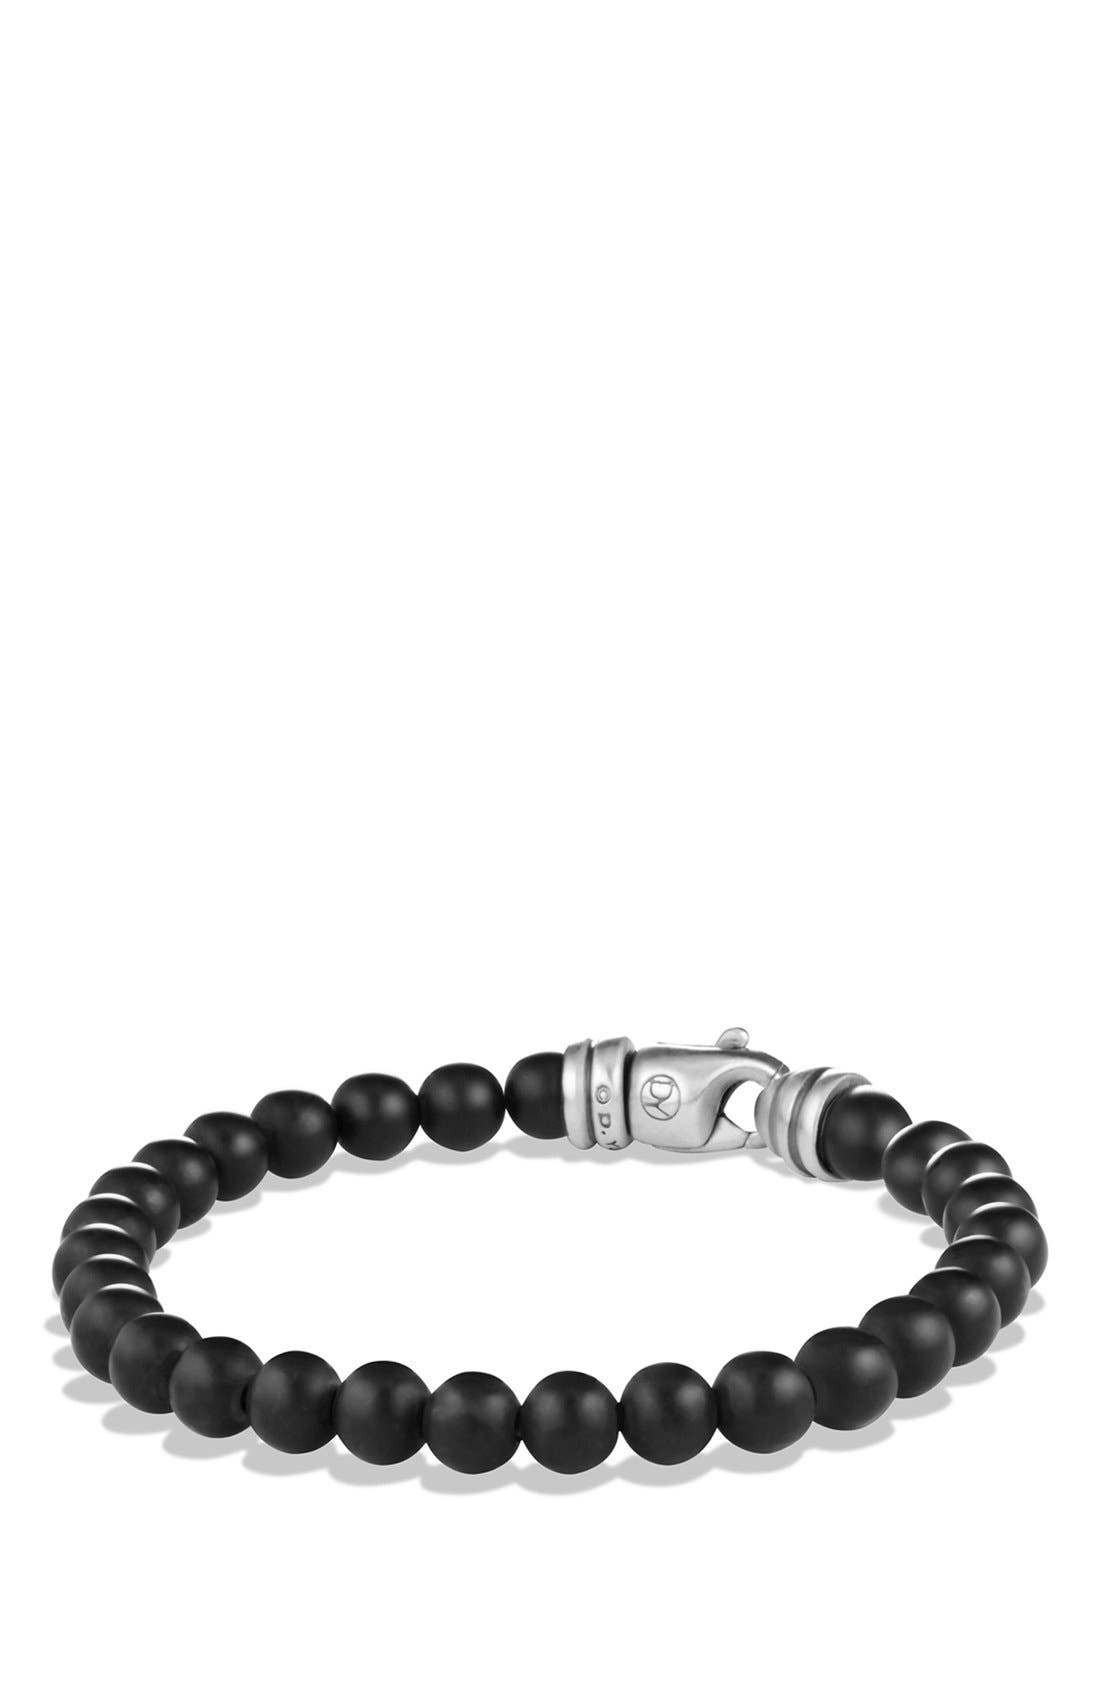 'Spiritual Beads' Bracelet,                         Main,                         color, BLACK ONYX